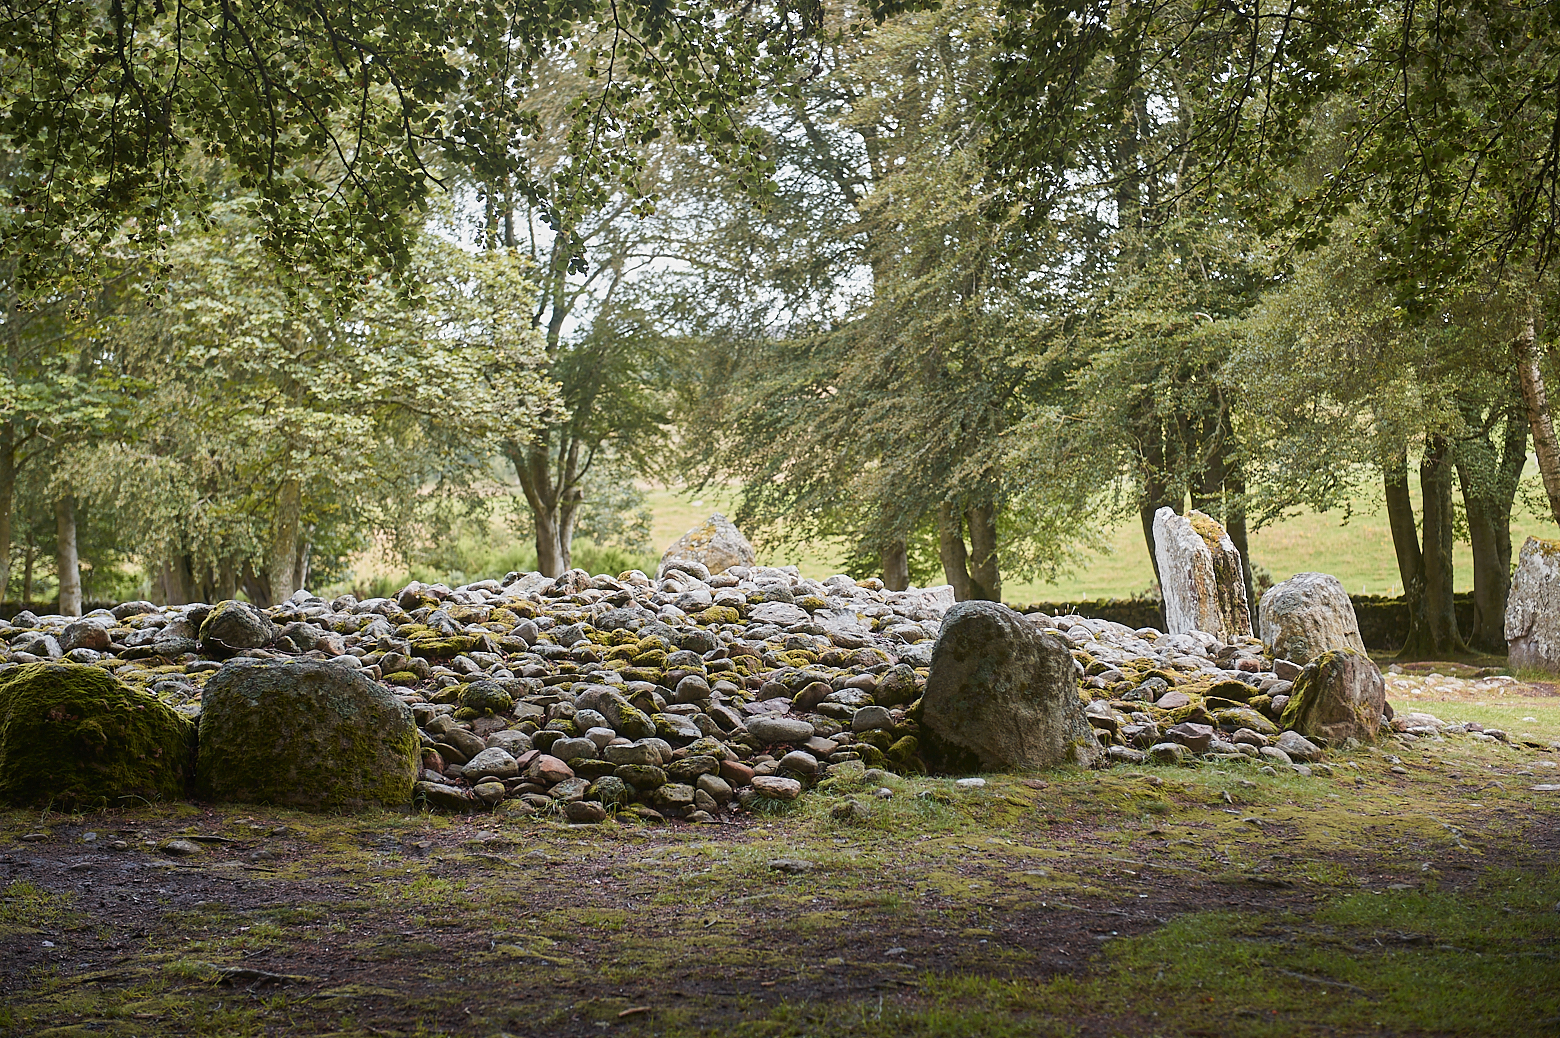 Visiting the Prehistoric Burial Cairns of Balnuaran of Clava, a 2000 year old burial place near Culloden, Scotland.